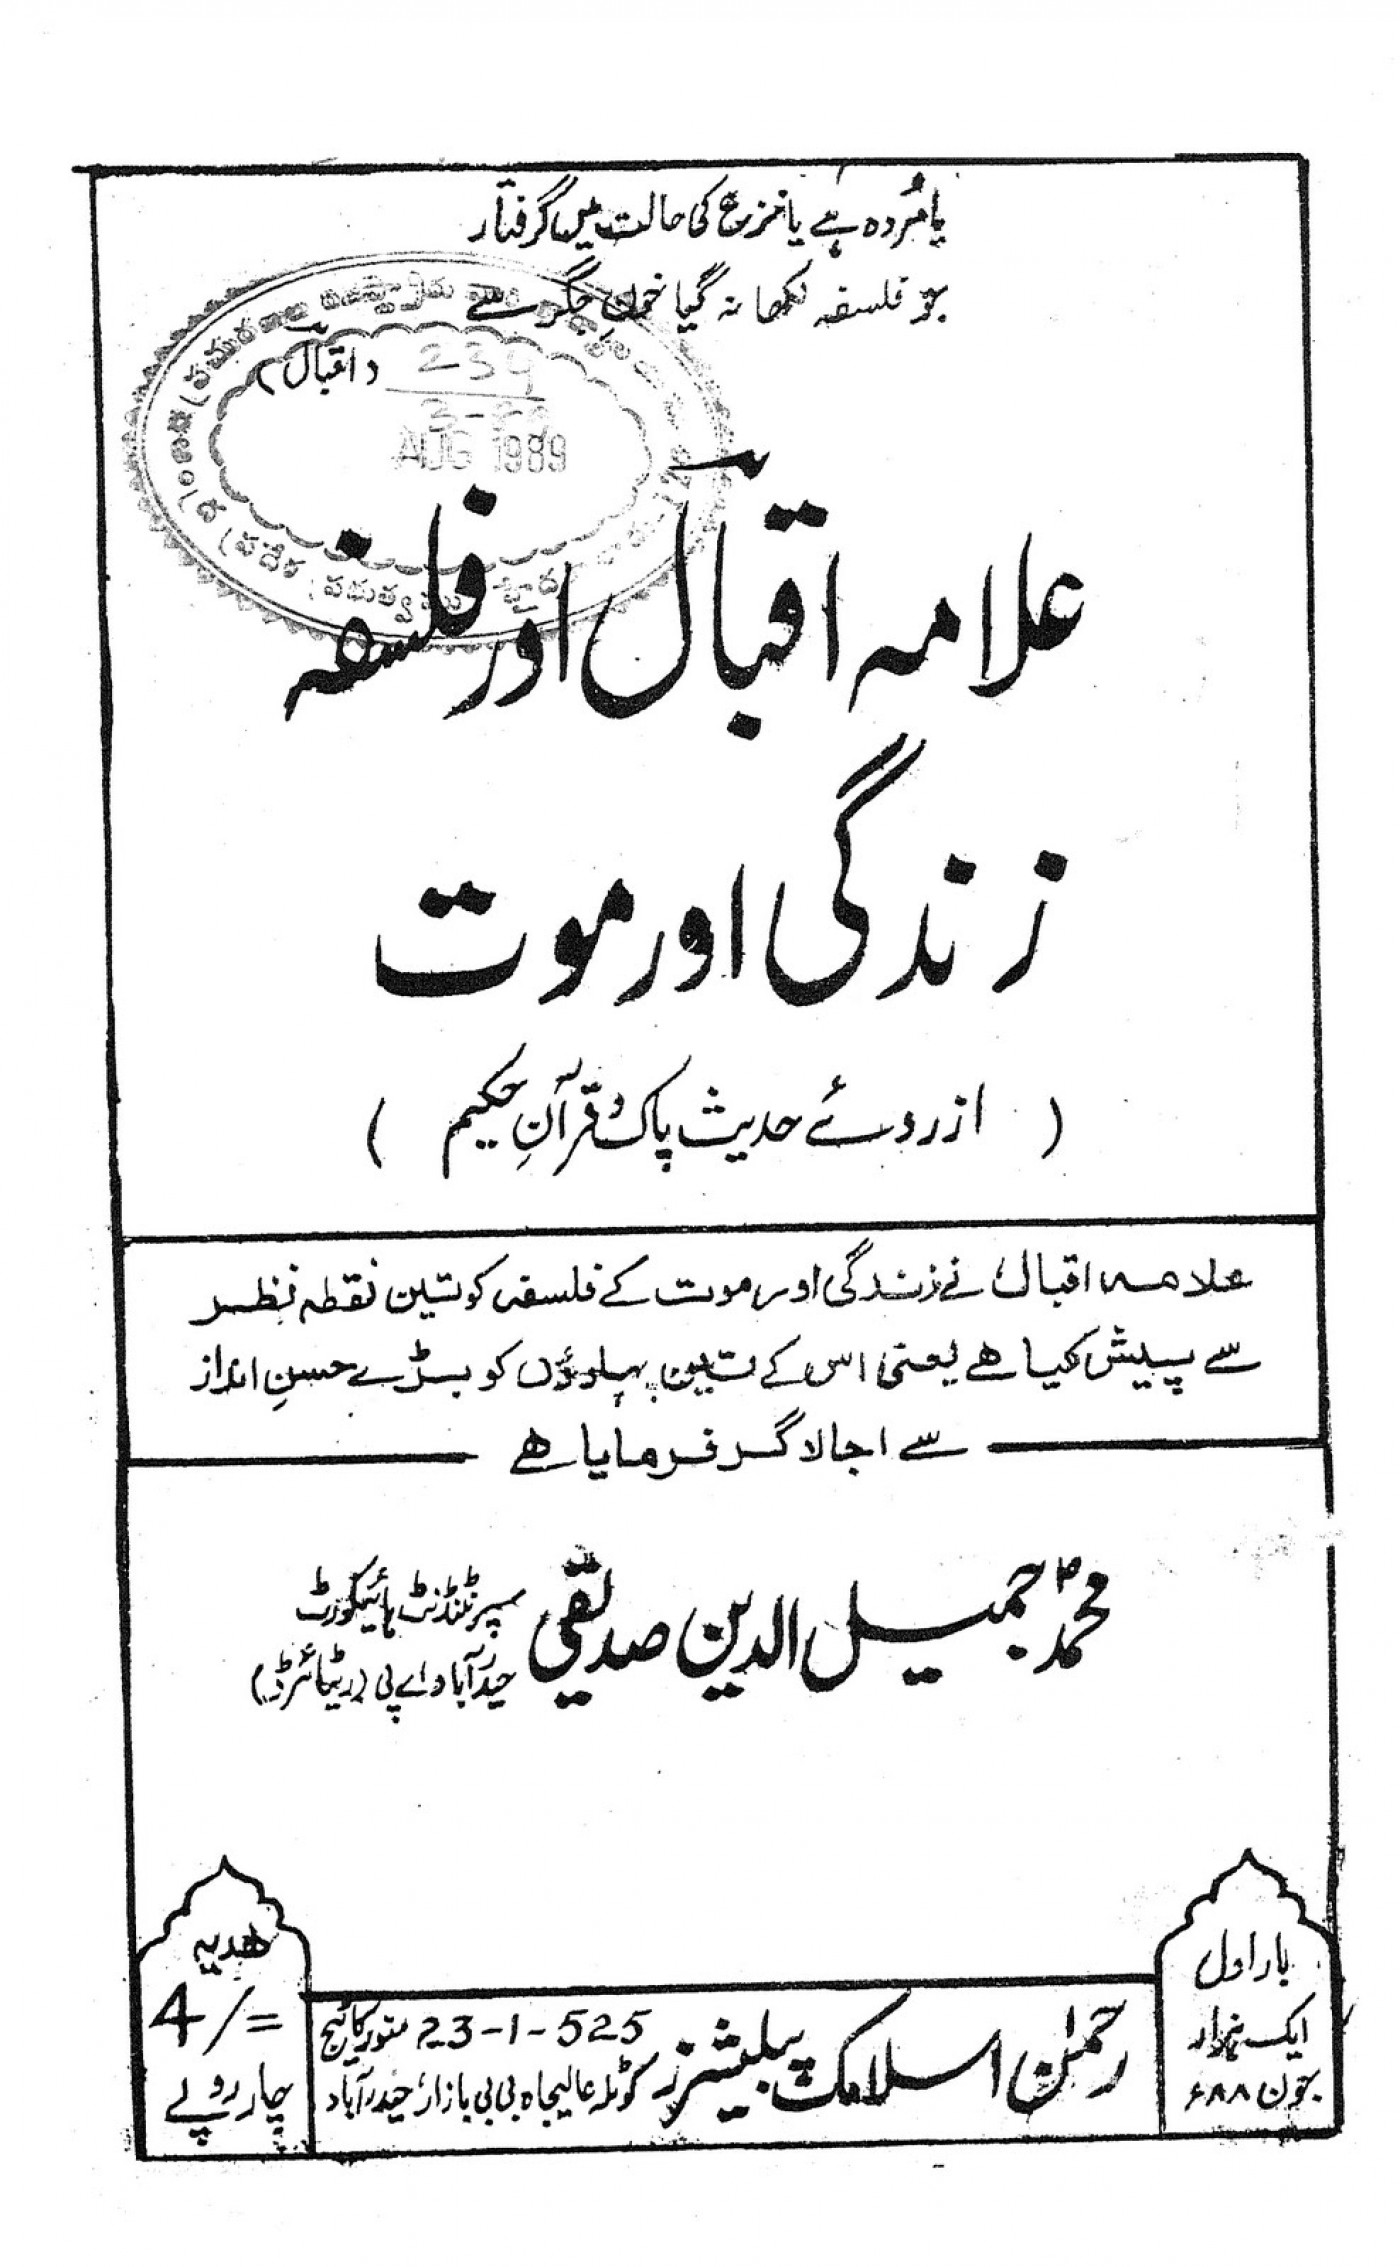 015 Allamaiqbalaurfalsafa Zindagi Aur Maut Urdu Essay Allama Iqbal Dreaded On In For Class 10 With Poetry Ka Shaheen Headings And 1400